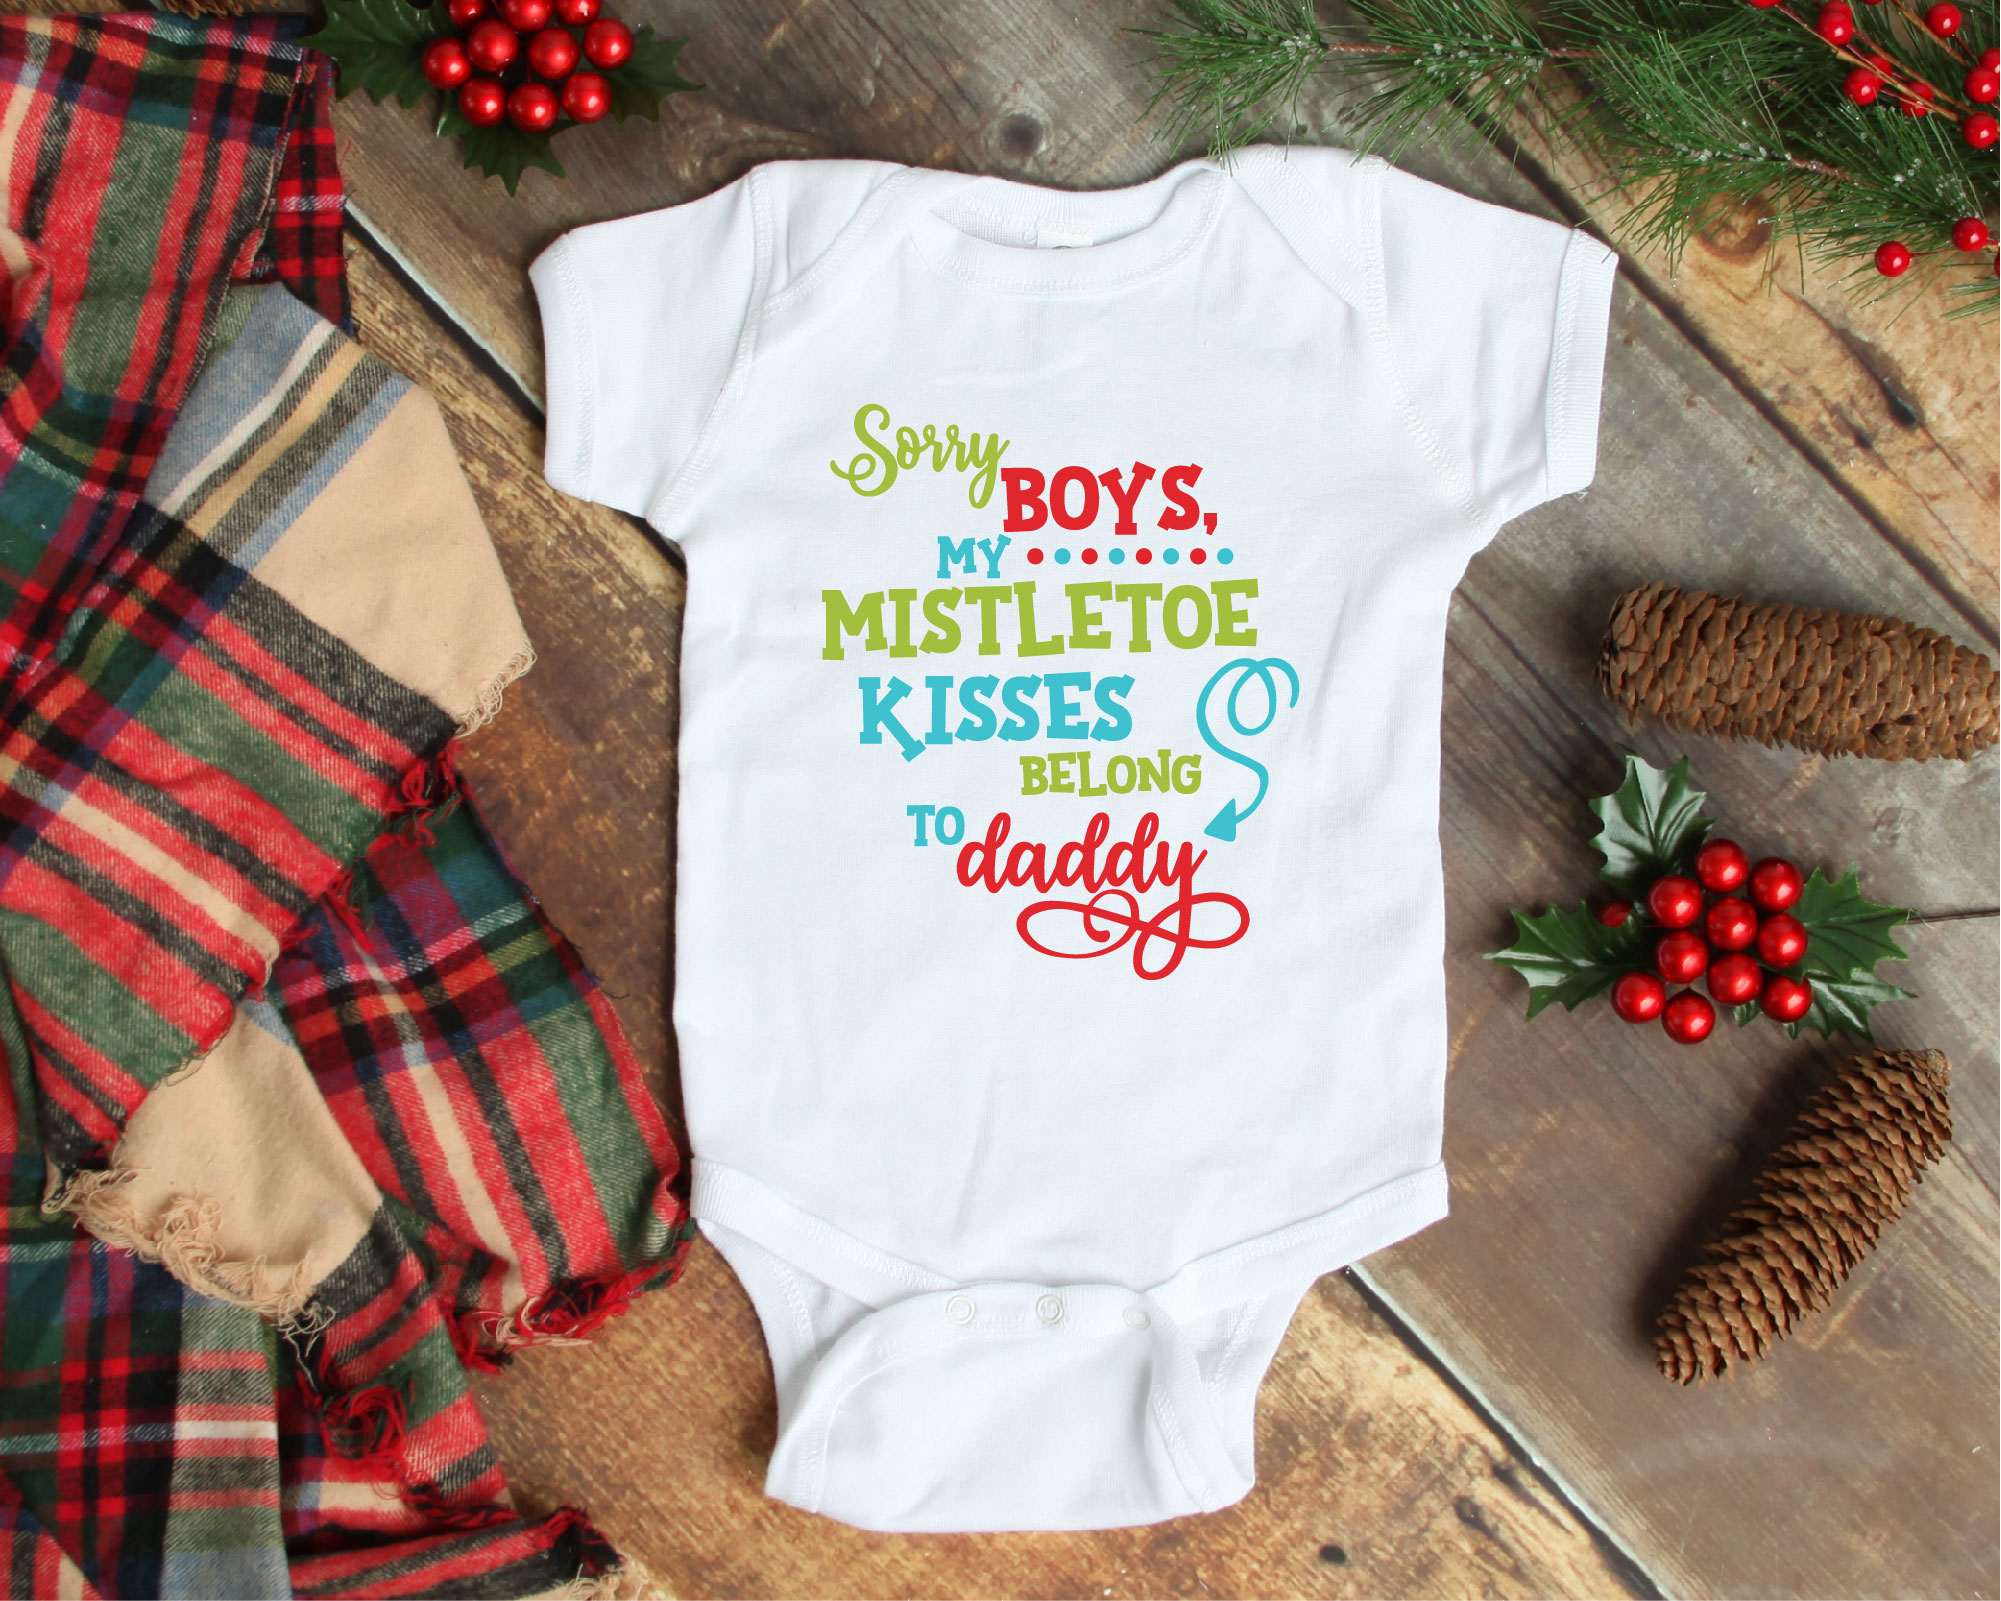 Mistletoe Kisses SVG, Sorry Boys My Kisses Belong To Daddy example image 2